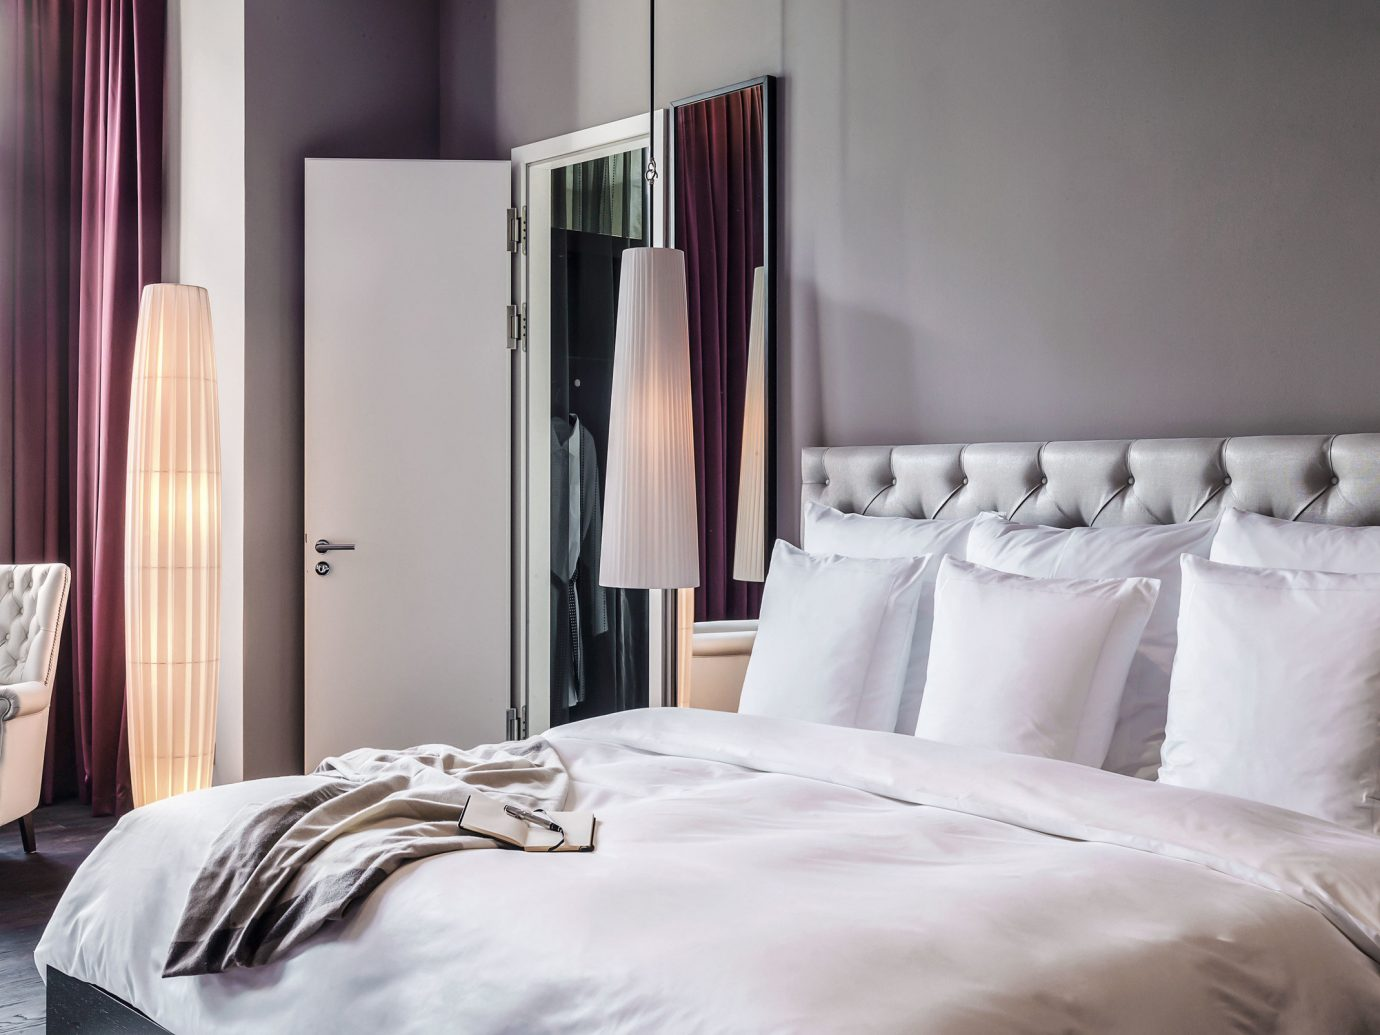 Berlin Boutique Hotels Germany Hotels Luxury Travel bed indoor wall hotel floor room Bedroom property interior design furniture pillow Suite bed sheet cottage bed frame textile apartment bedclothes